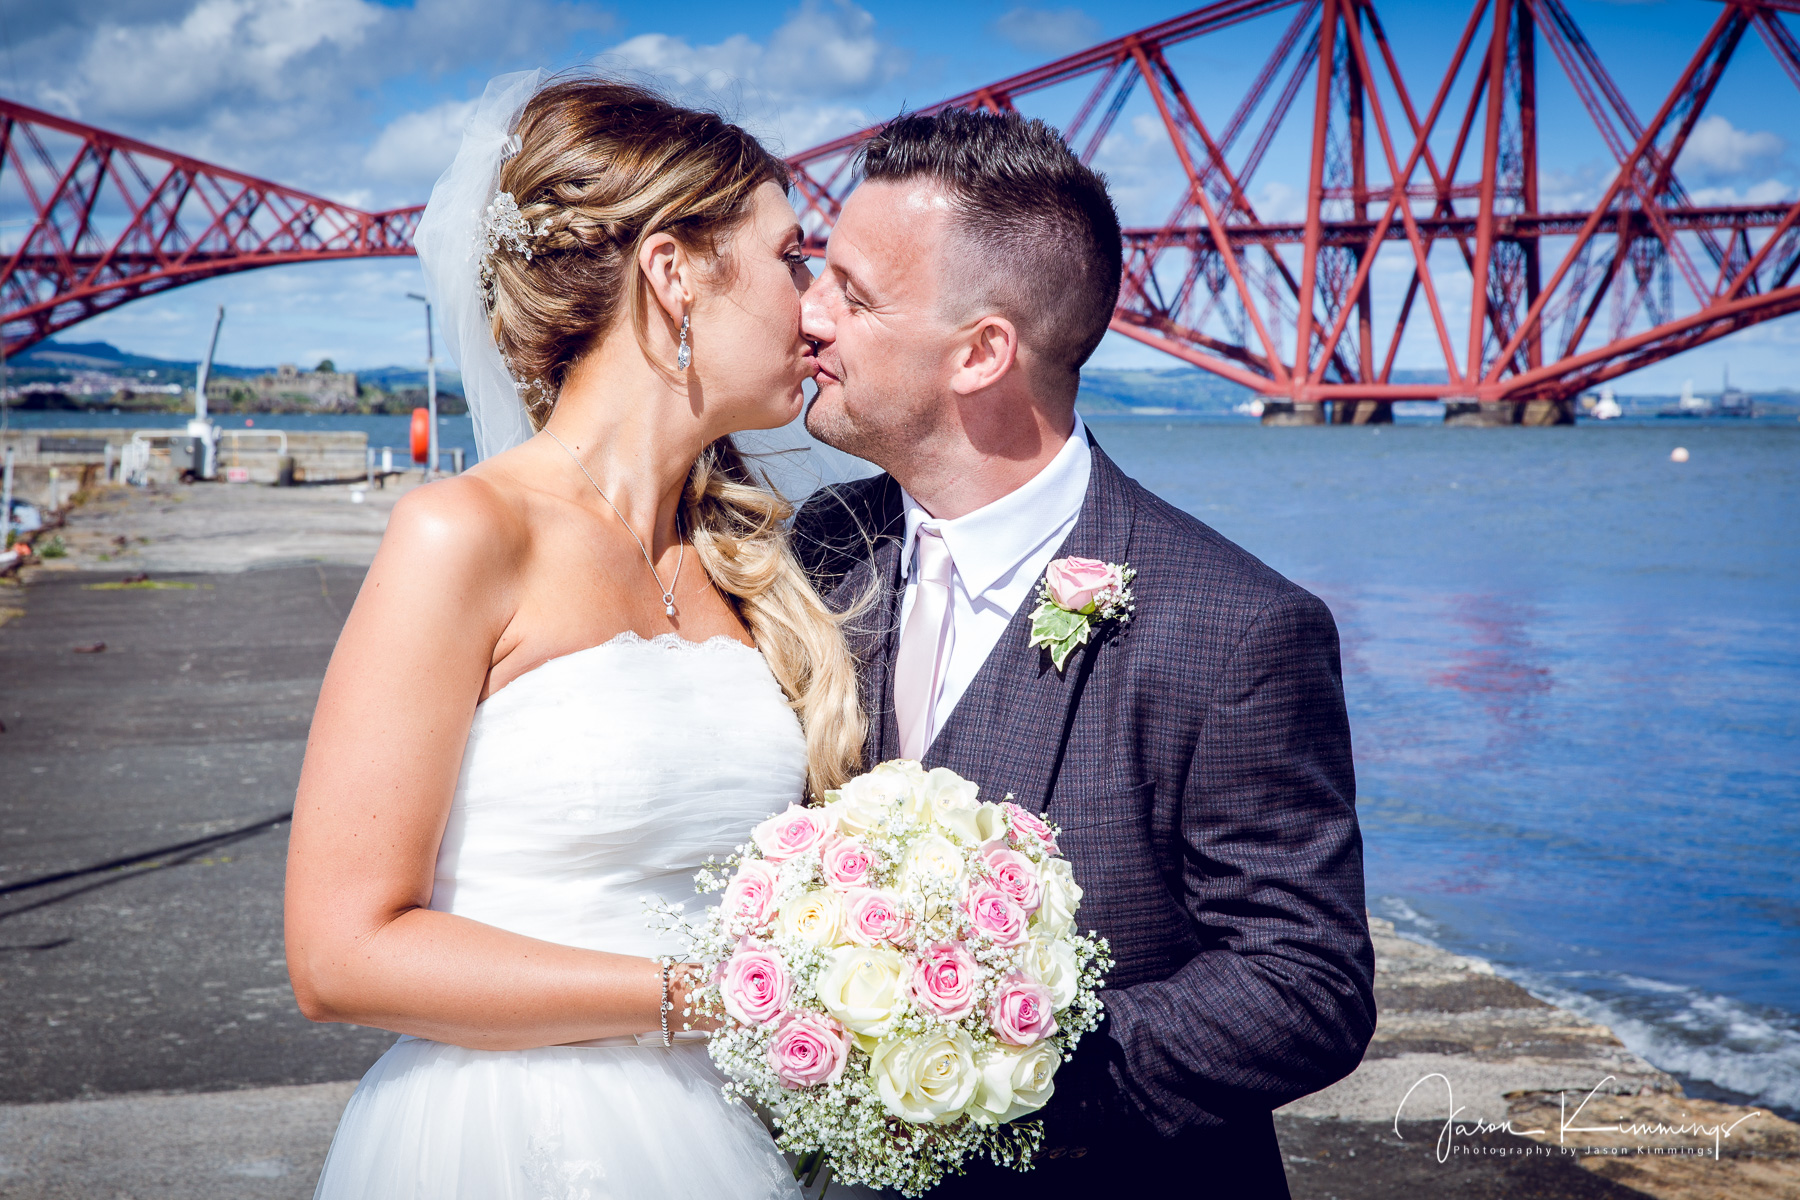 South-queensferry-wedding-photography-edinburgh-22.jpg